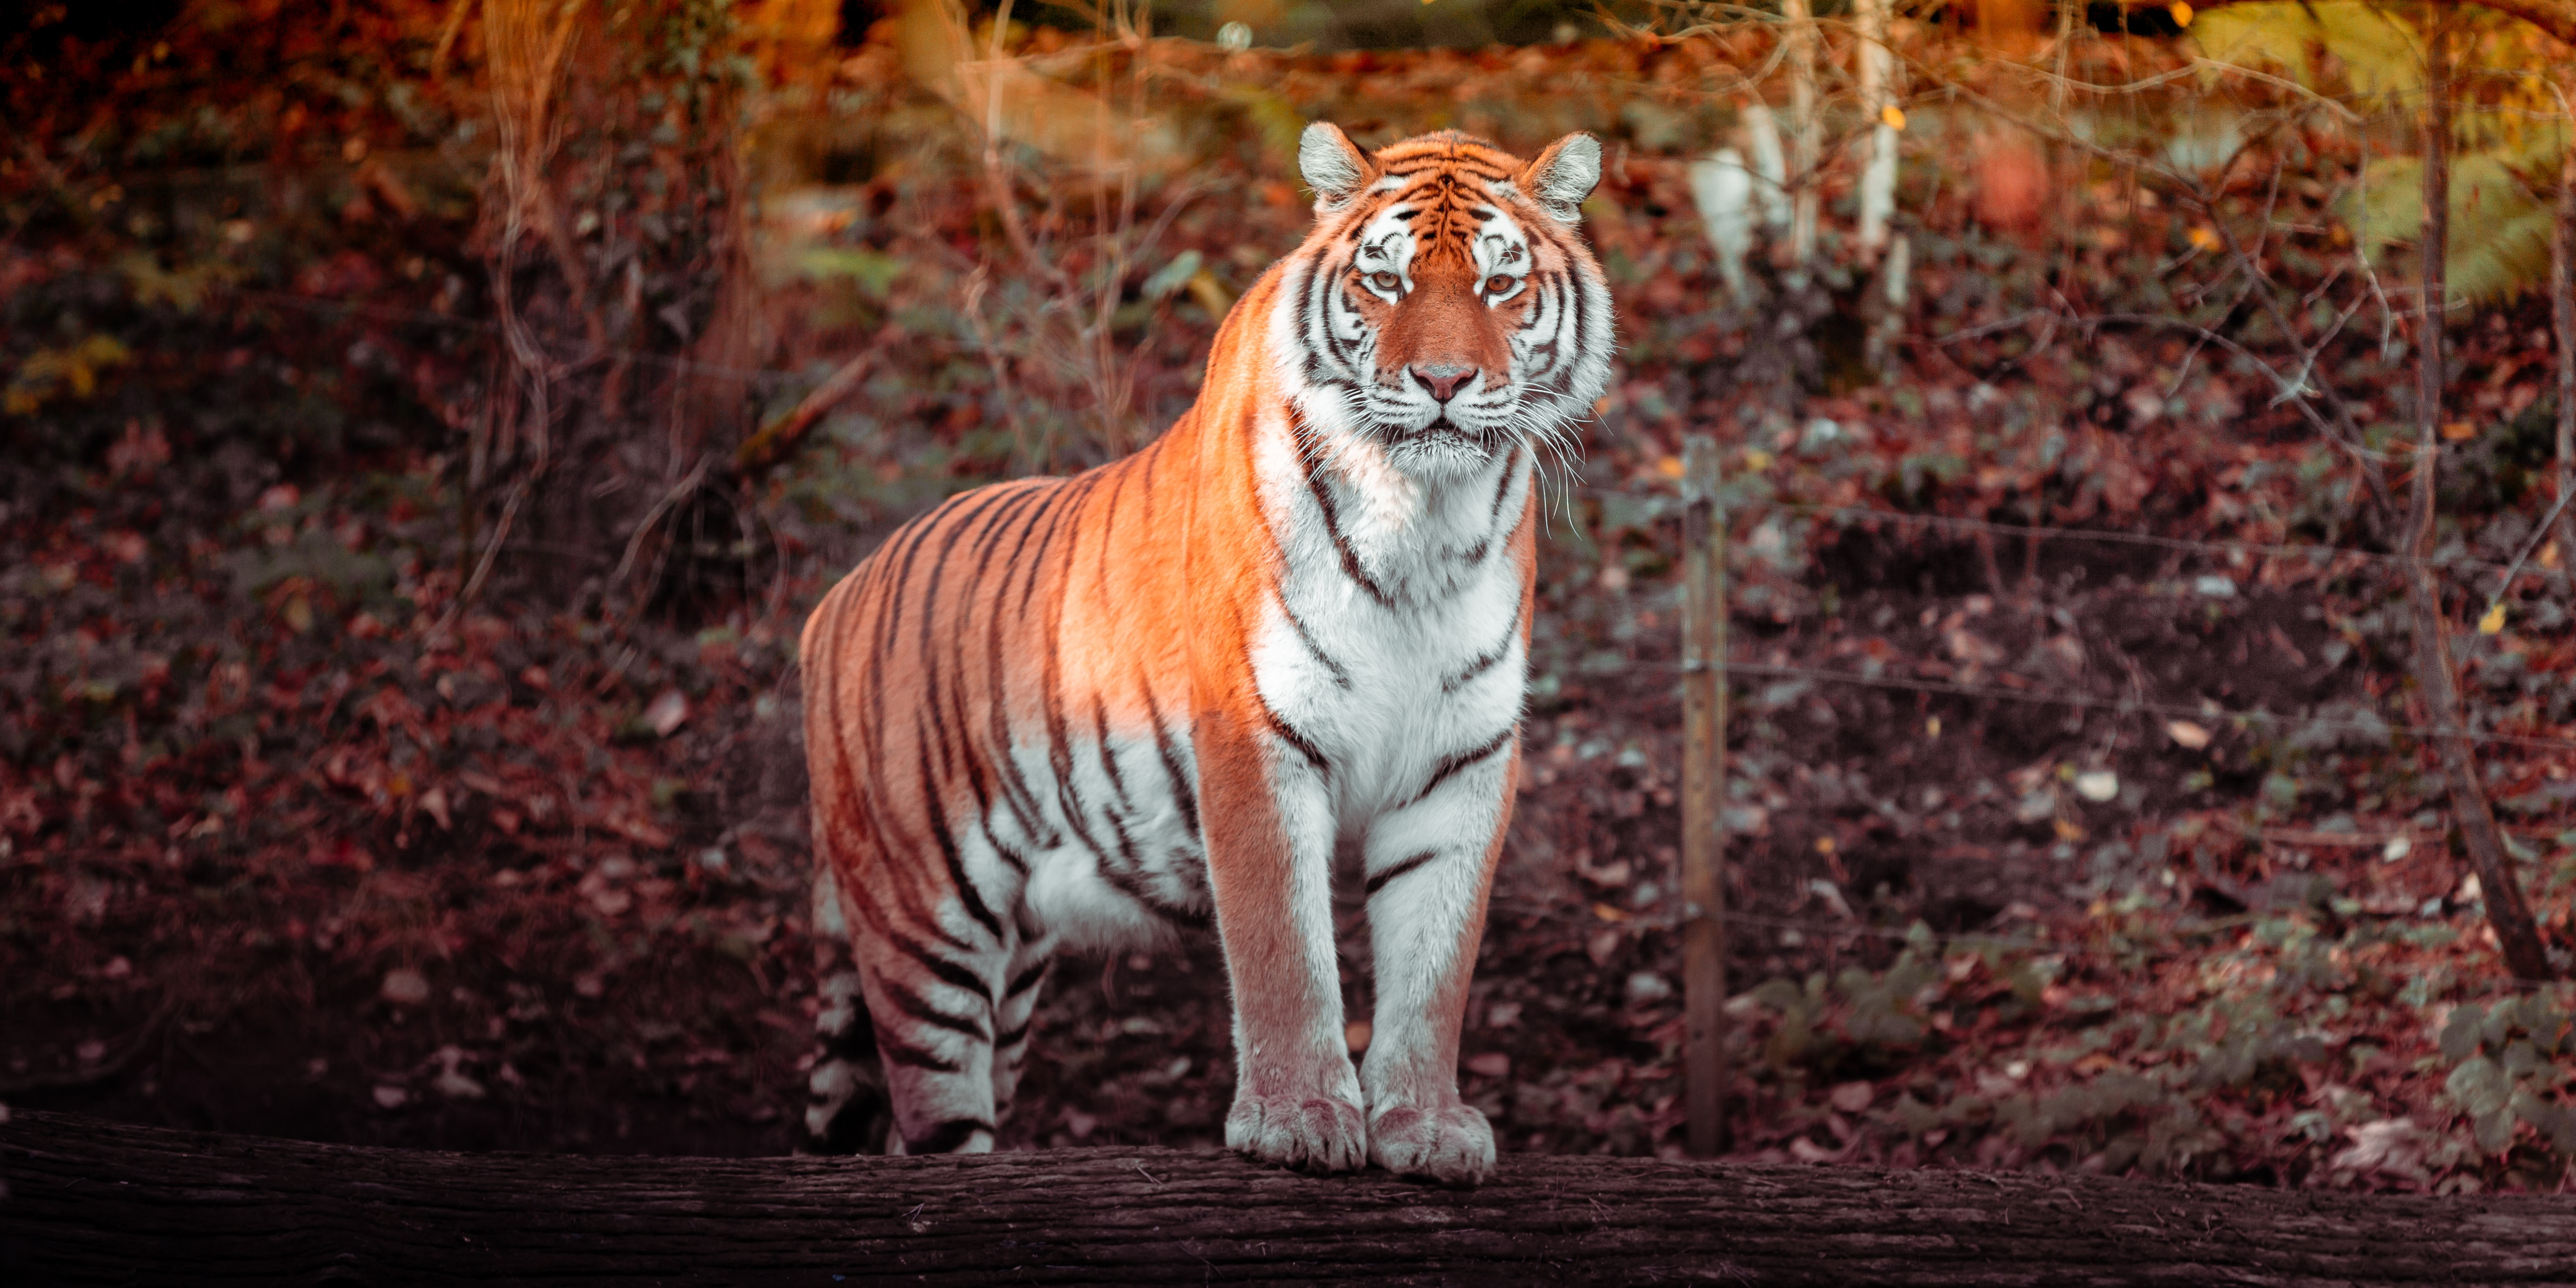 141115 download wallpaper Animals, Tiger, Animal, Predator, Big Cat screensavers and pictures for free